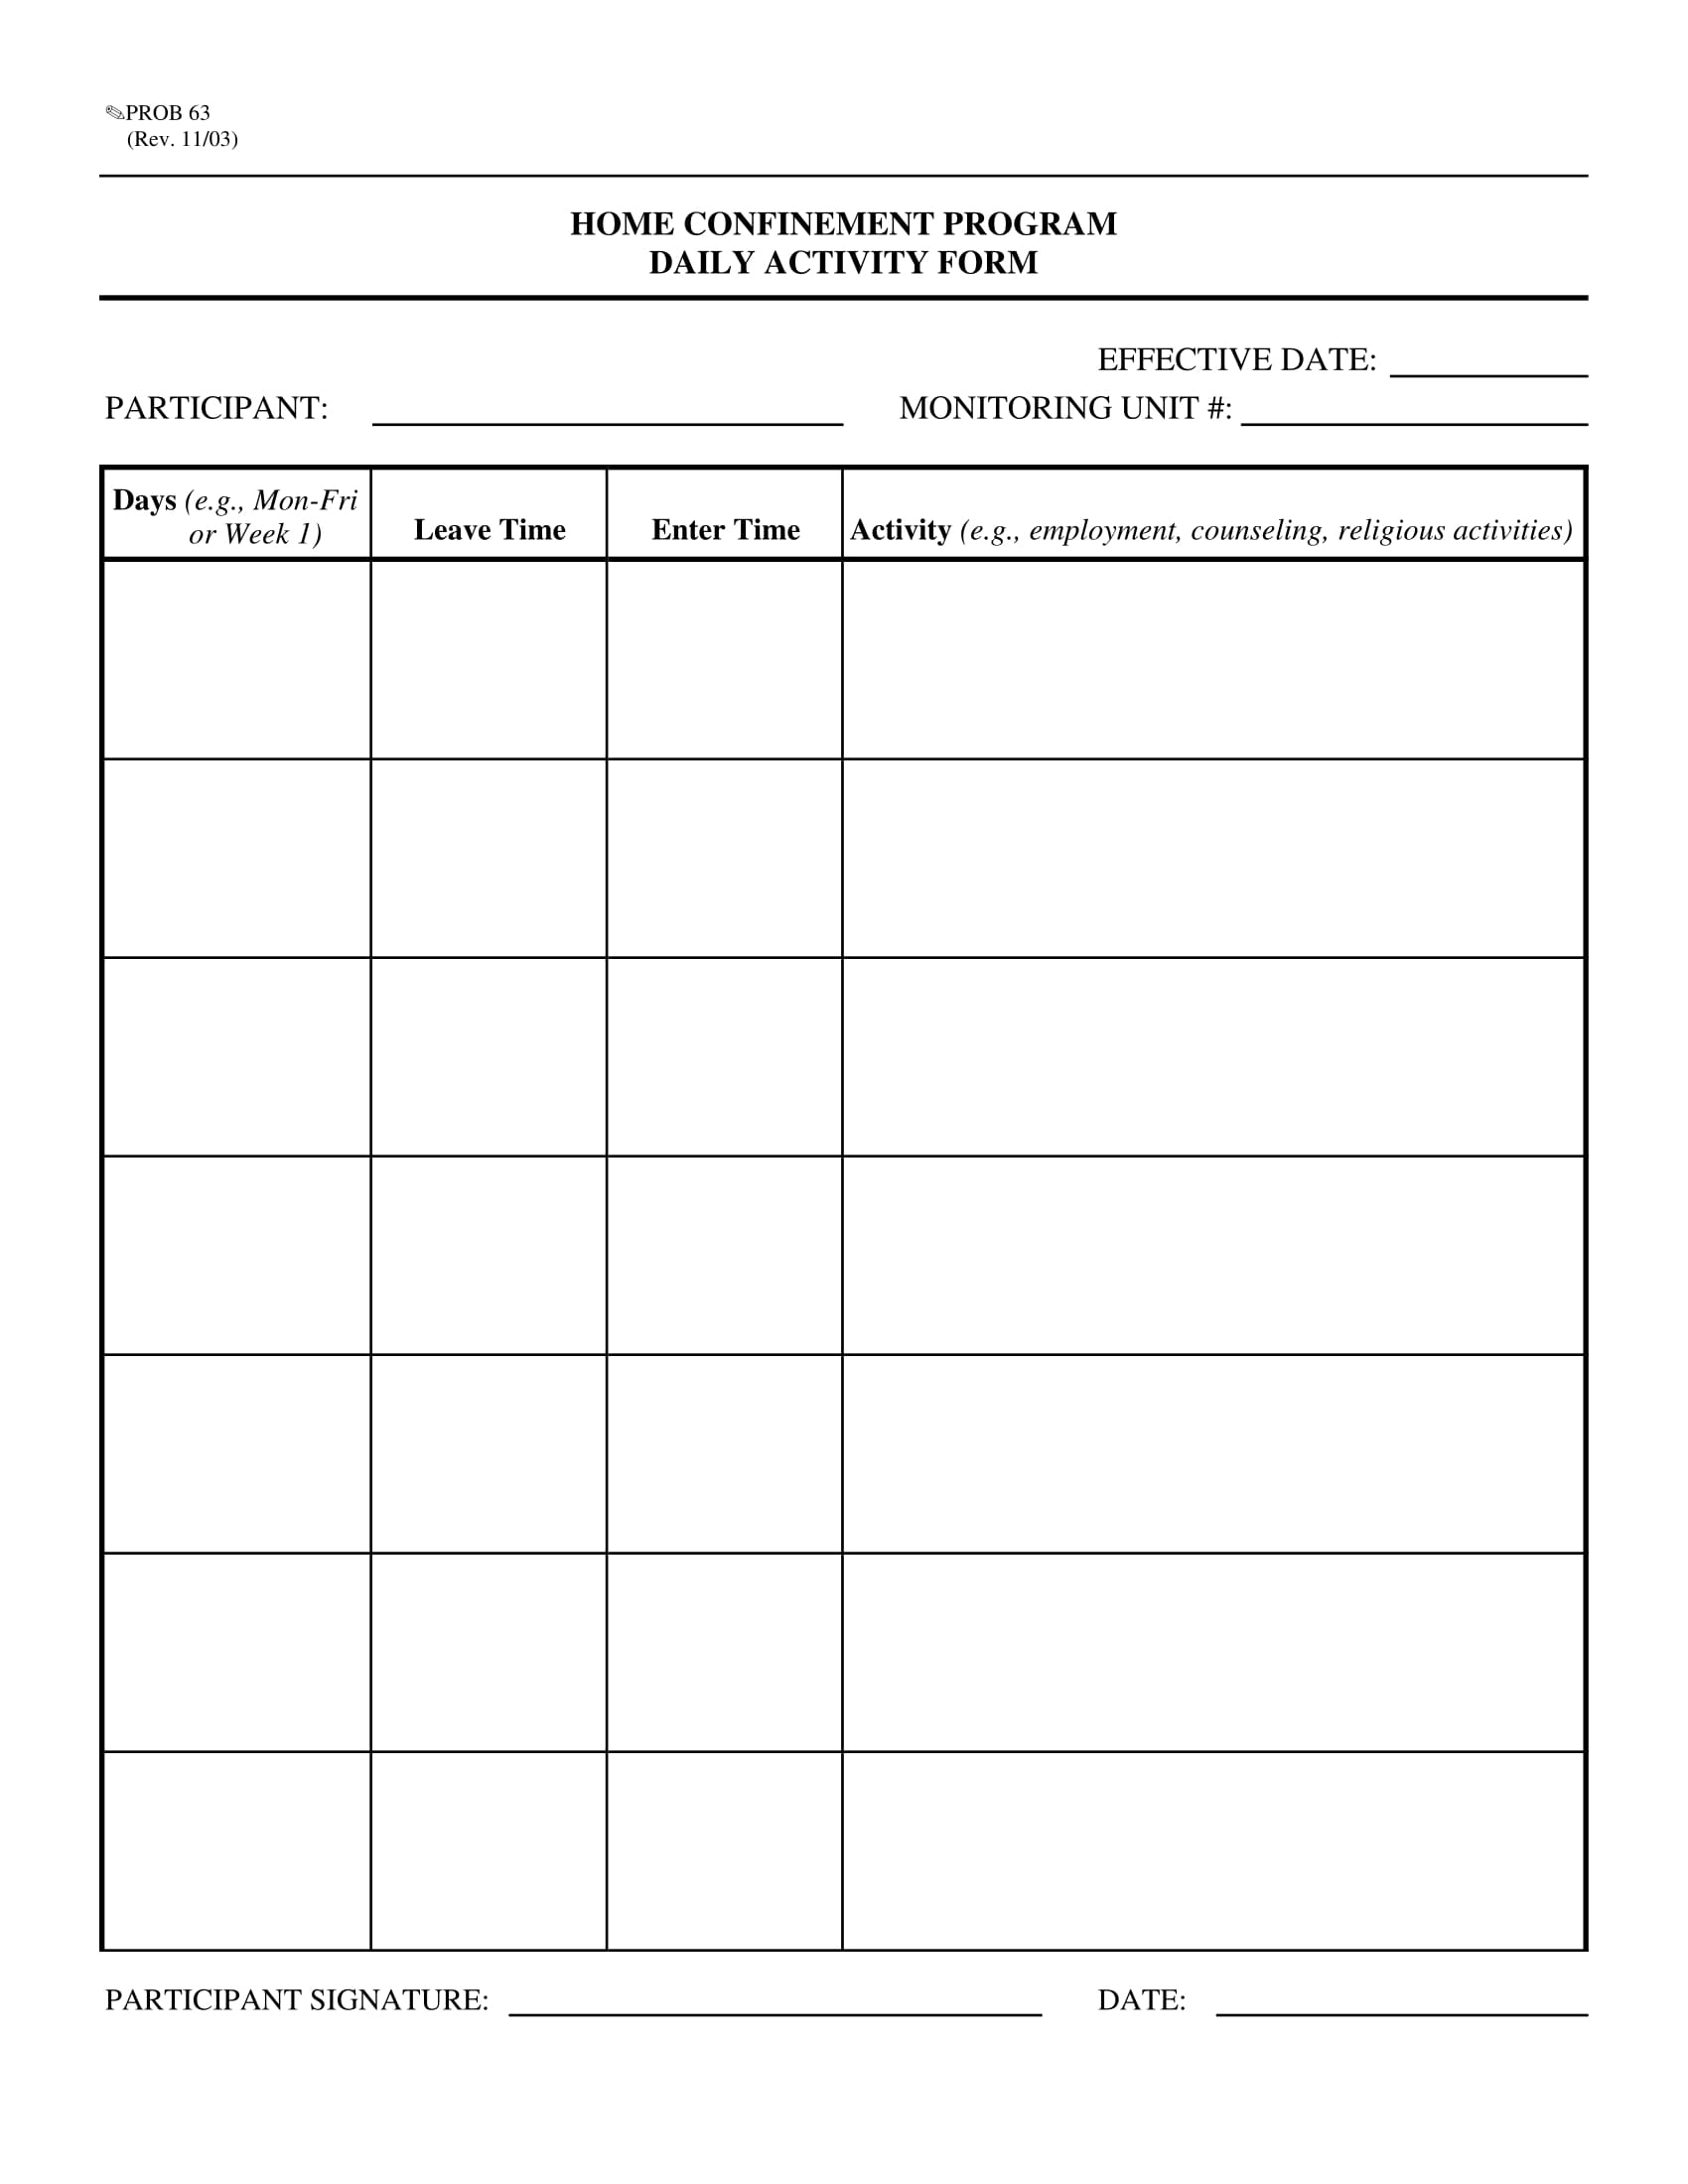 home confinement daily report form 1